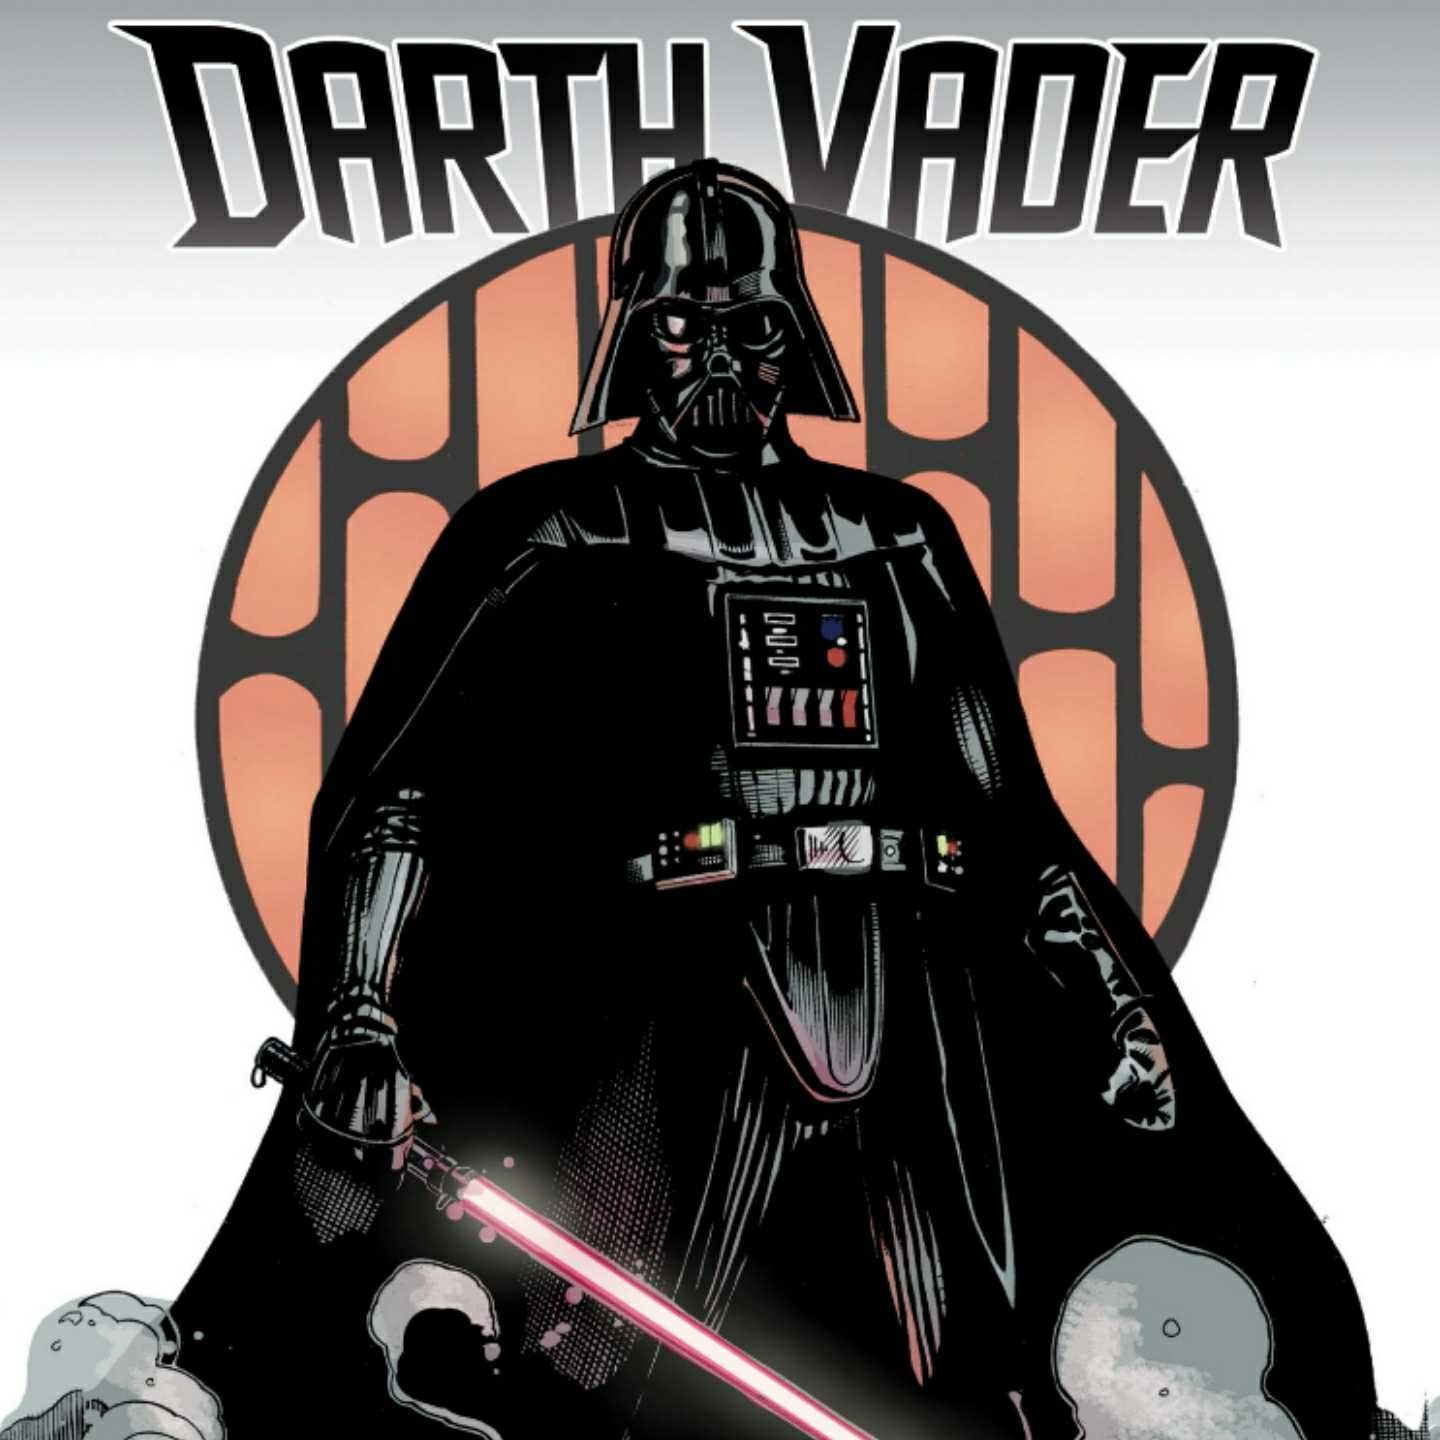 Star wars, marvel, Disney, Darth Vader